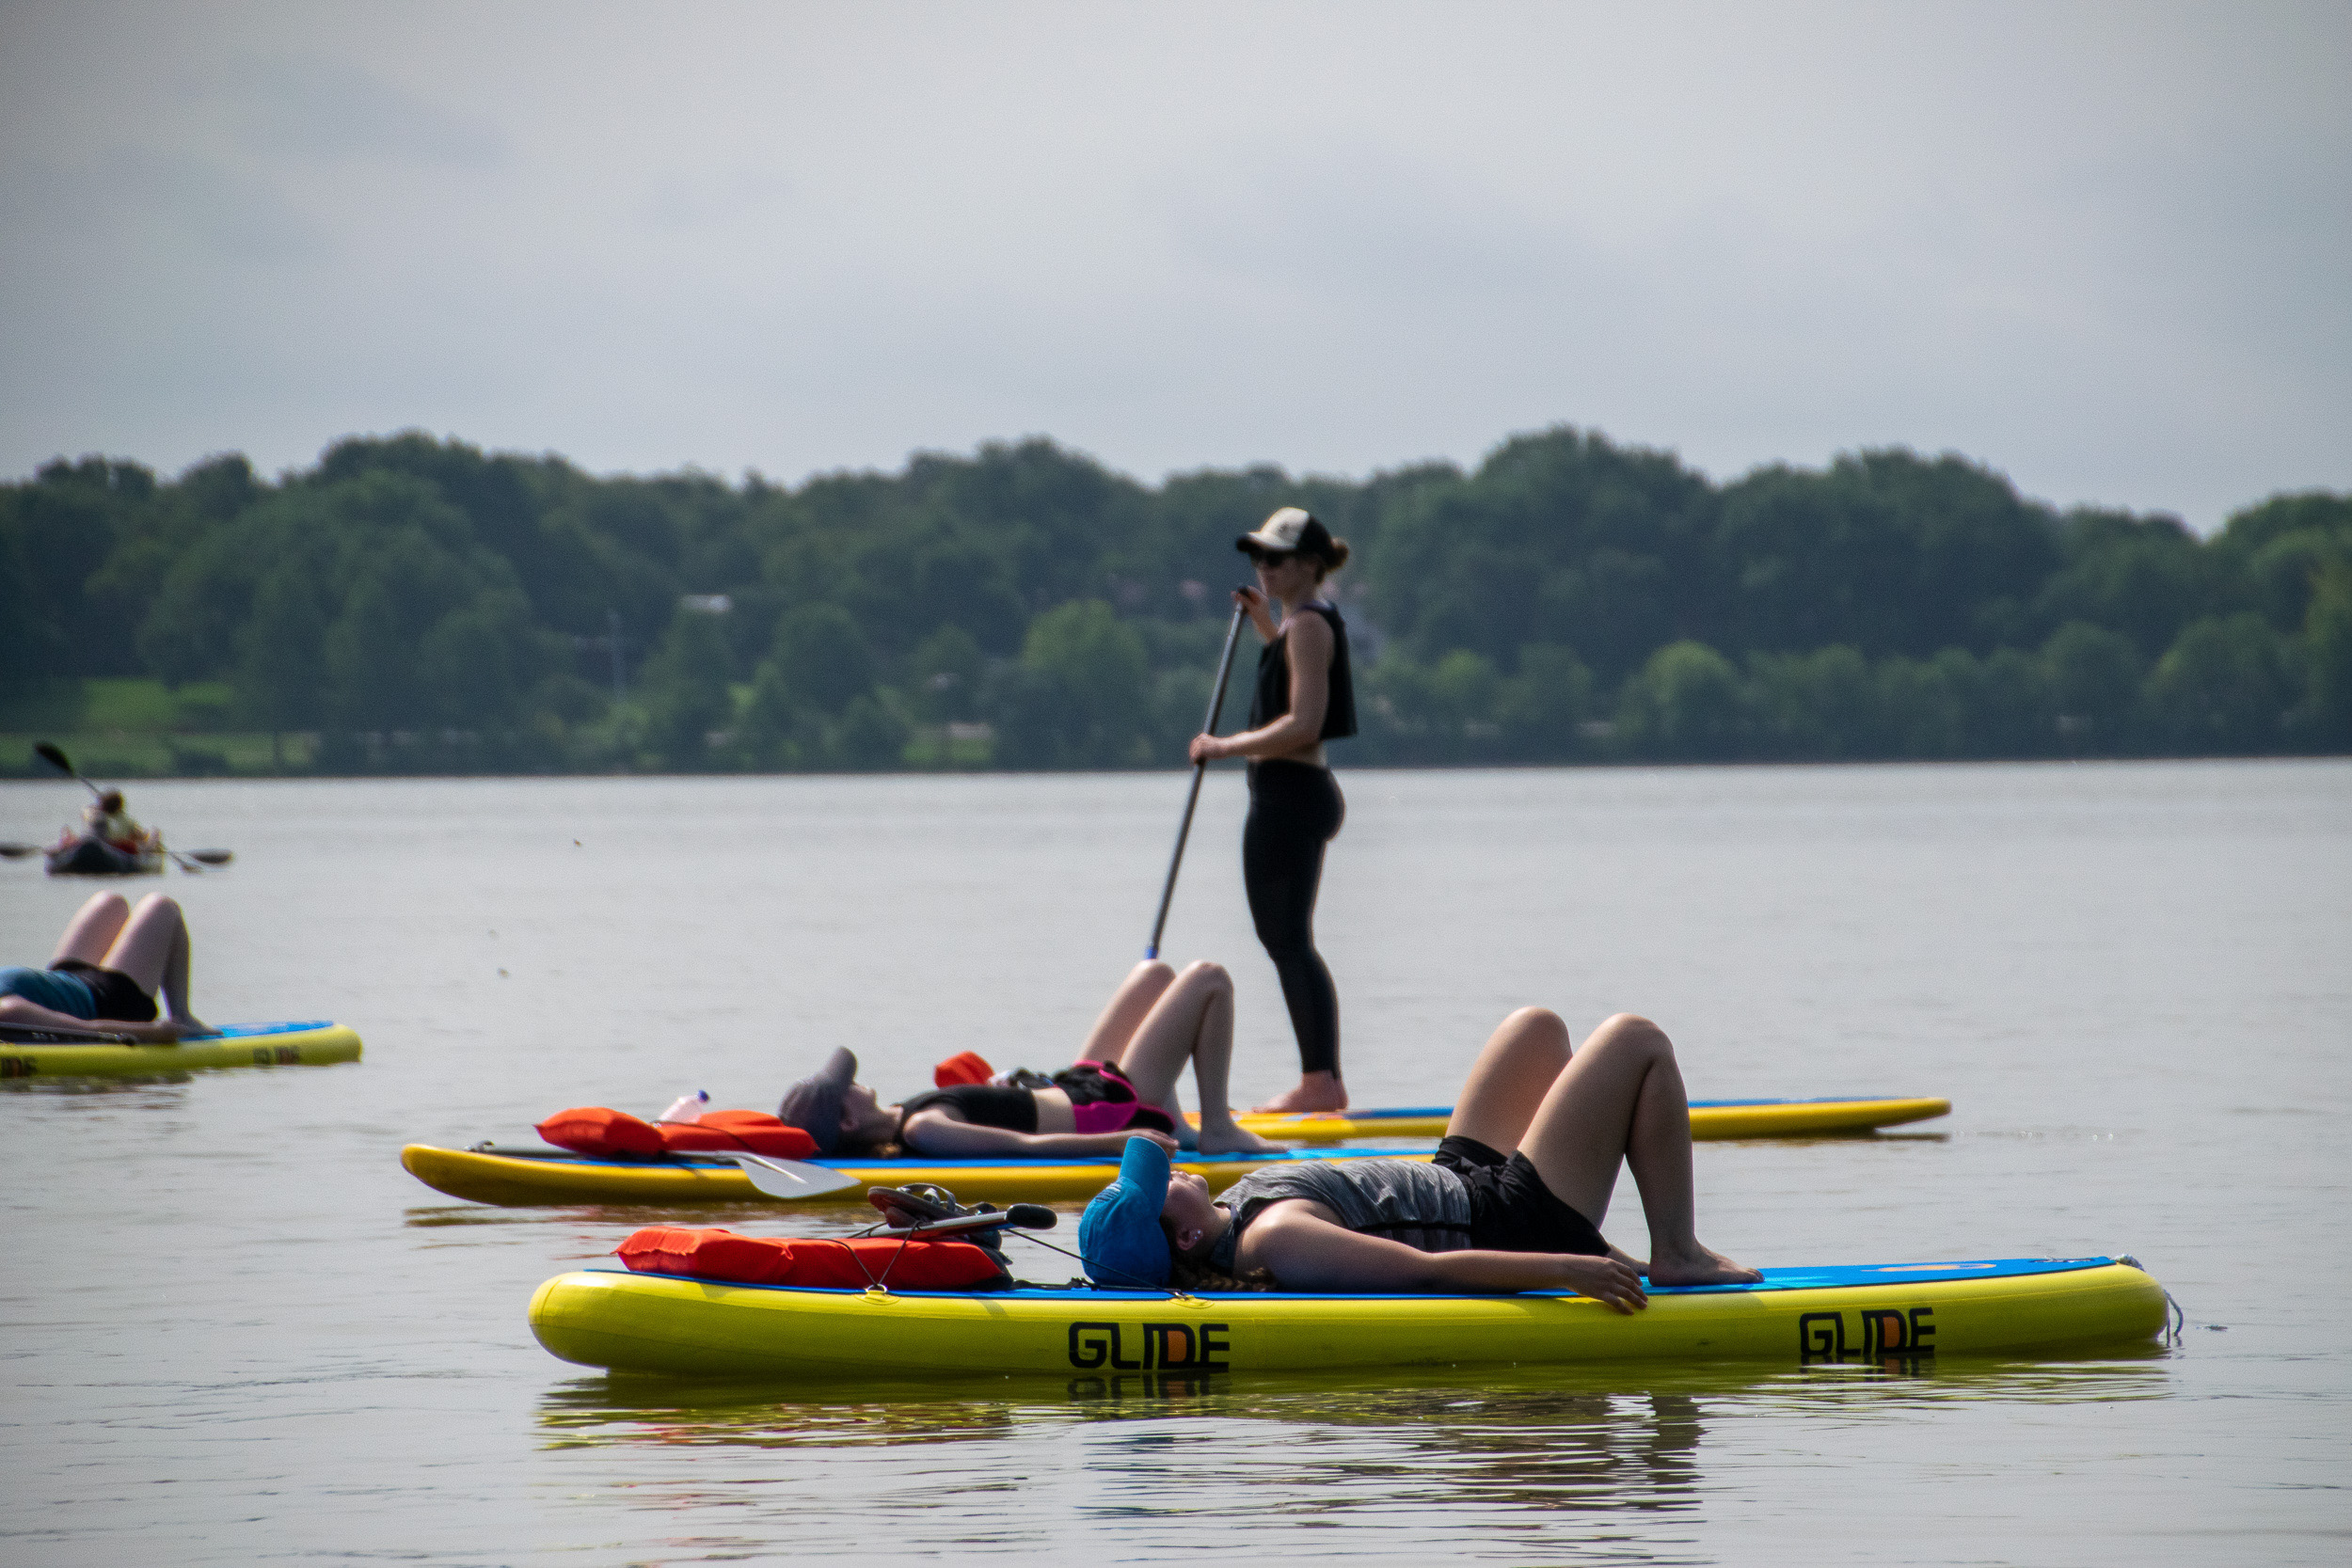 Instructor Tory Christopherson-Sommerfeldt of Just Be Well Yoga surveys her group of paddle boarding yogis in the water at White Rock Lake in Dallas.